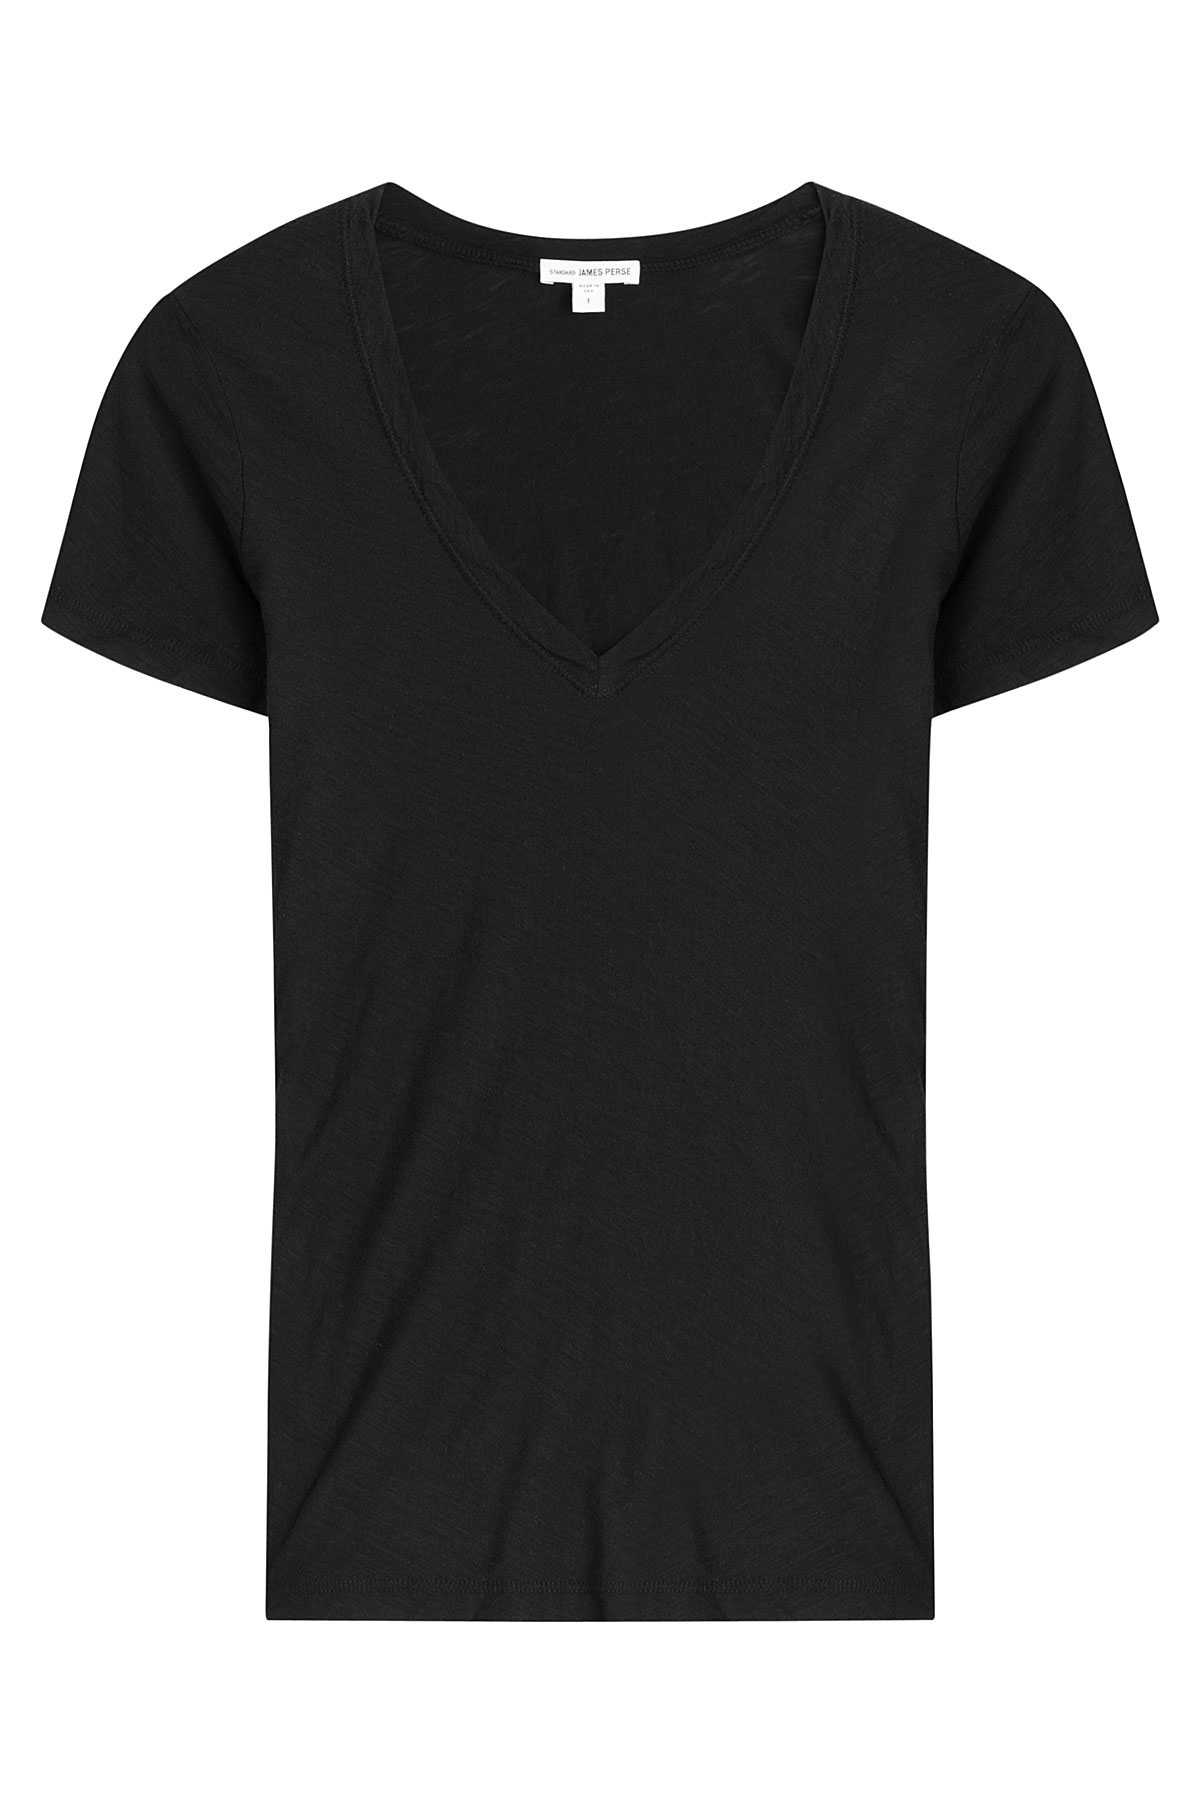 James perse cotton t shirt black lyst for James perse t shirts sale